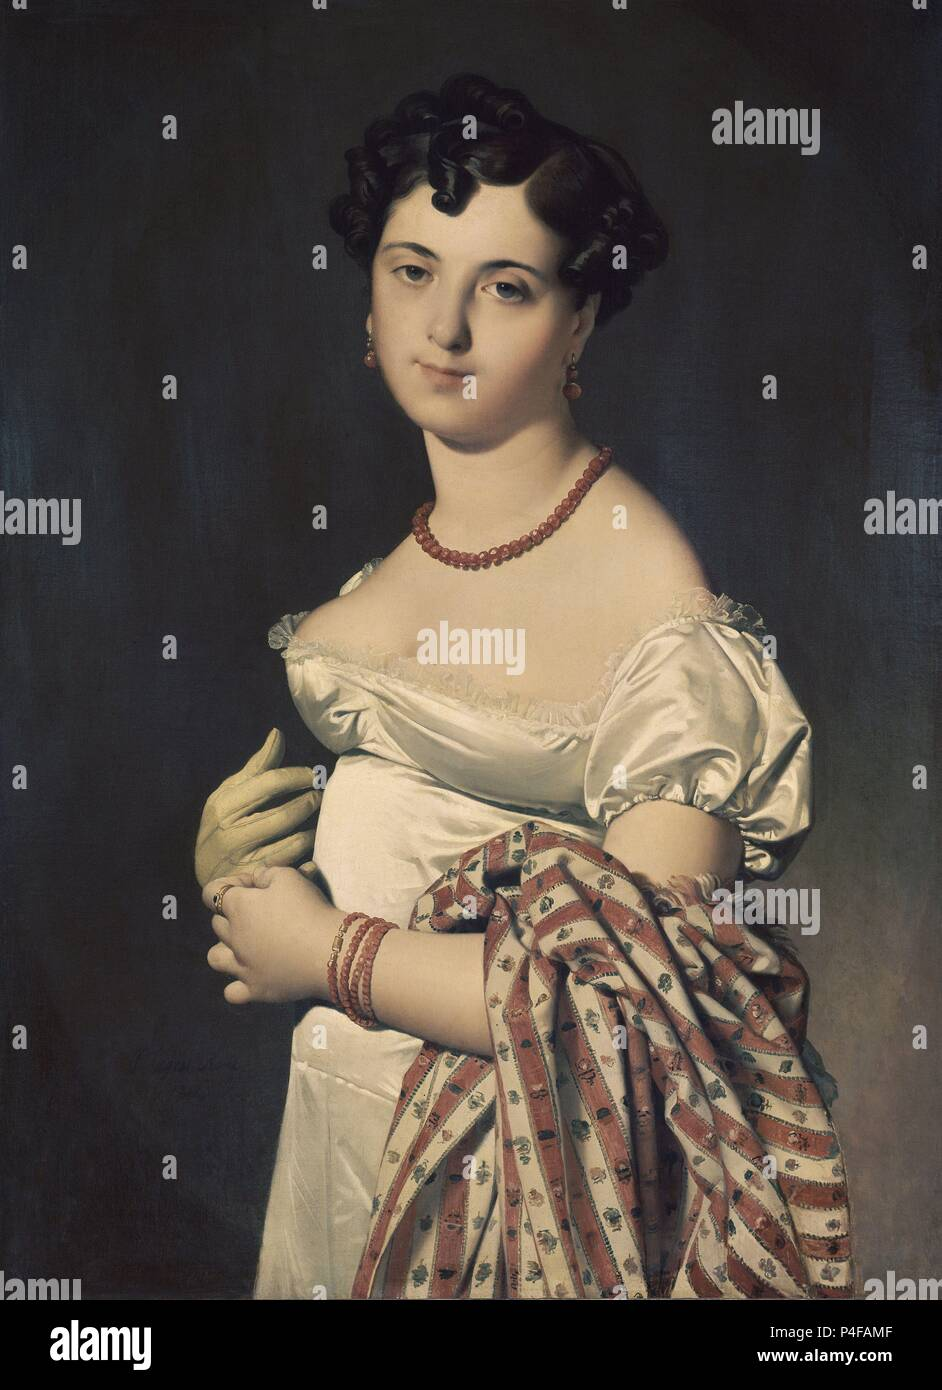 Madame Henri-Philippe-Joseph Panckouke - 1811 - 93x68 cm - oil on canvas. Author: Jean Auguste Dominique Ingres (1780-1867). Location: LOUVRE MUSEUM-PAINTINGS, FRANCE. Also known as: RETRATO DE MADAME PANCKOUCKE. - Stock Image